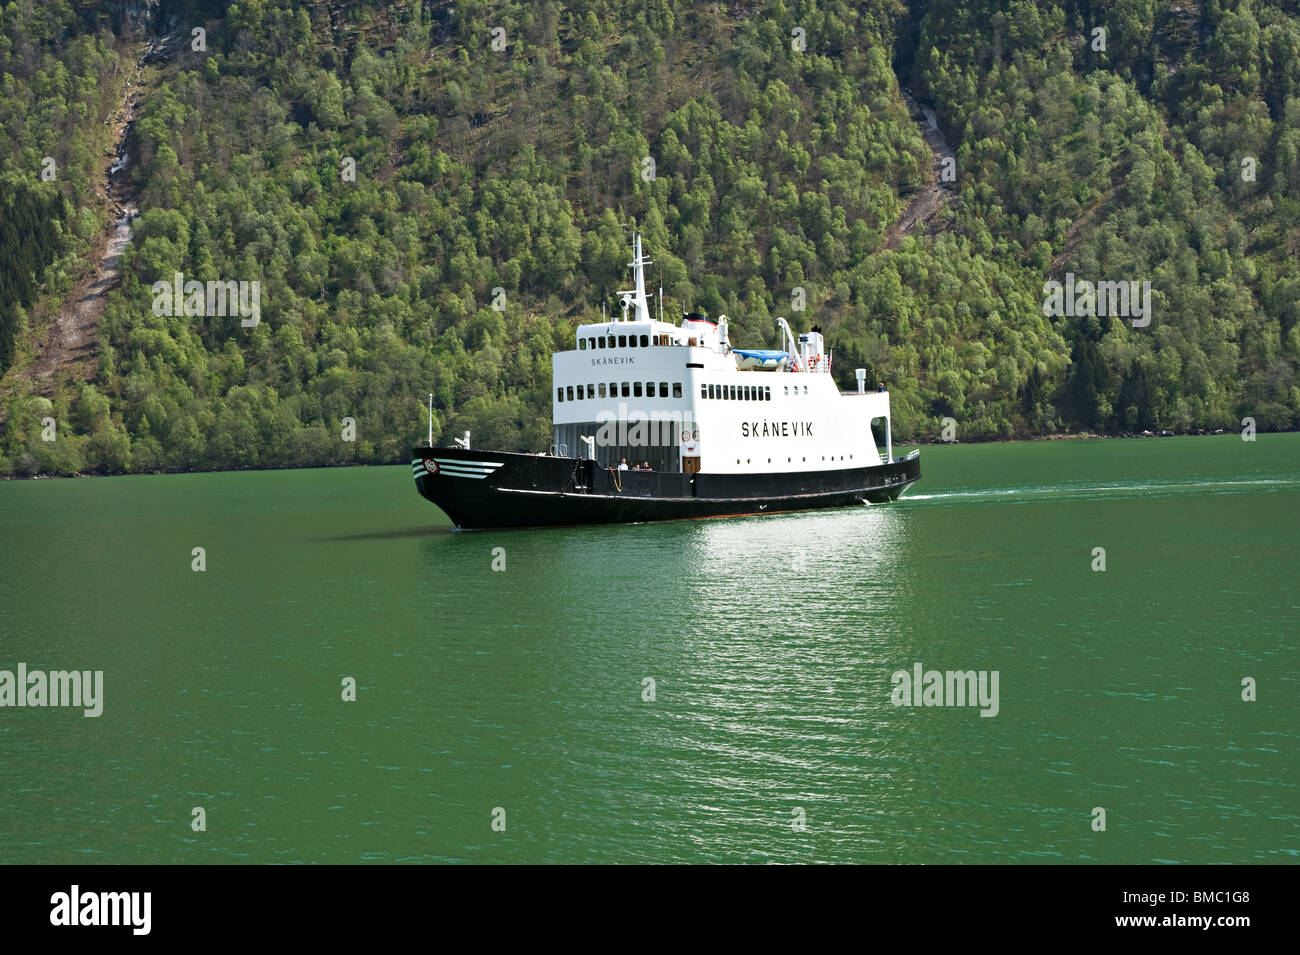 Car ferries sognefjord norway - Stock Photo The Small Norwgian Car Ferry Skanevik Arriving At Mundal Terminal Fjaerland Fjaerlandsfjord Sognefjord Norway